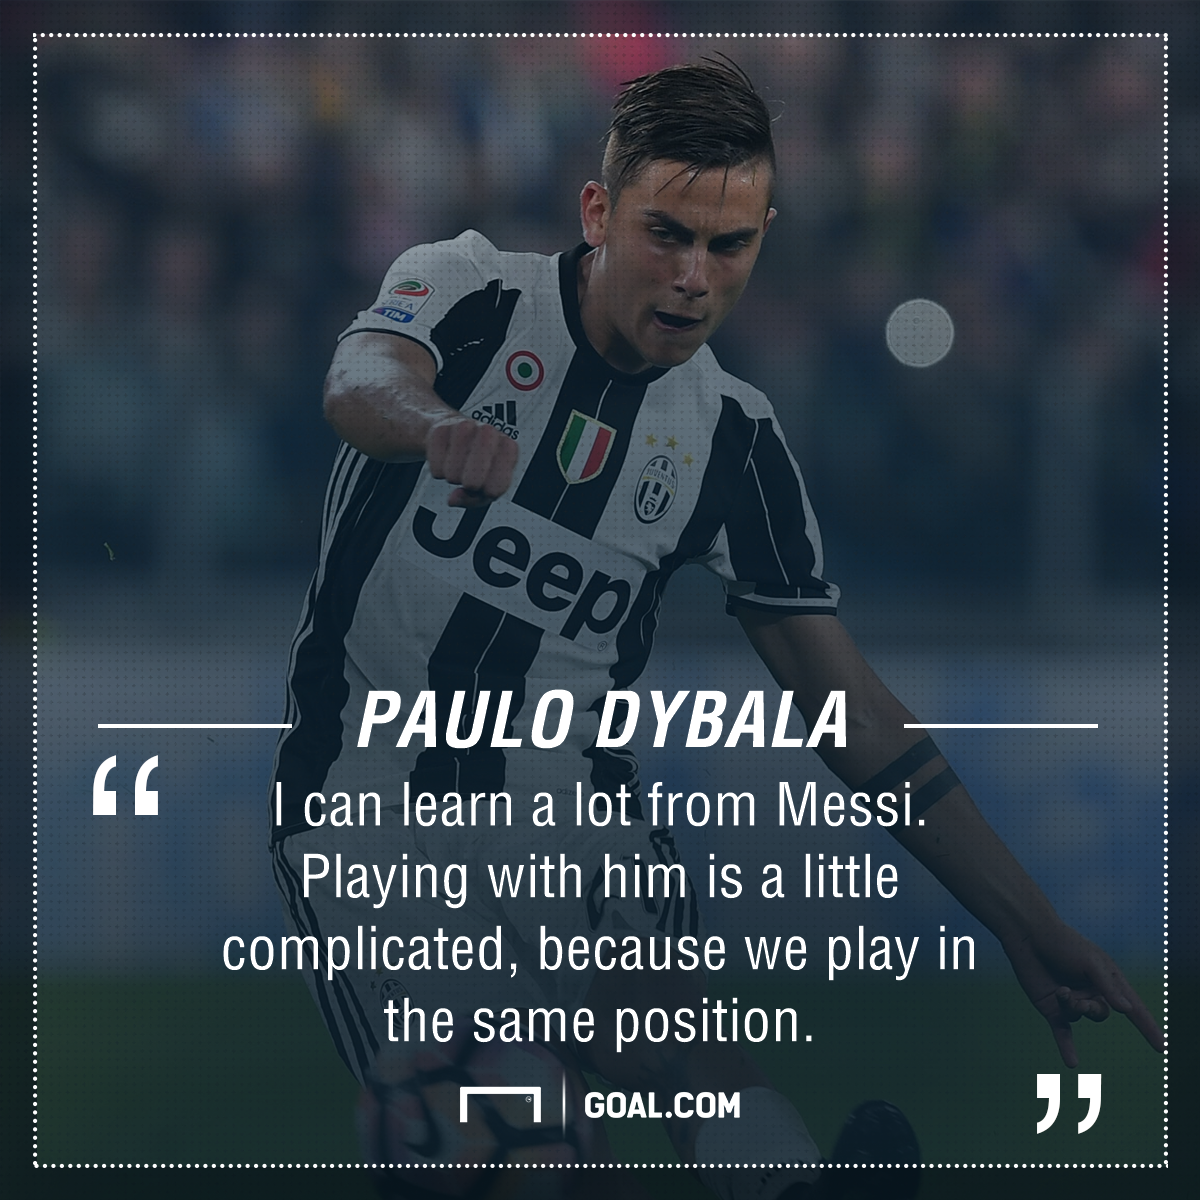 Dybala Messi quote